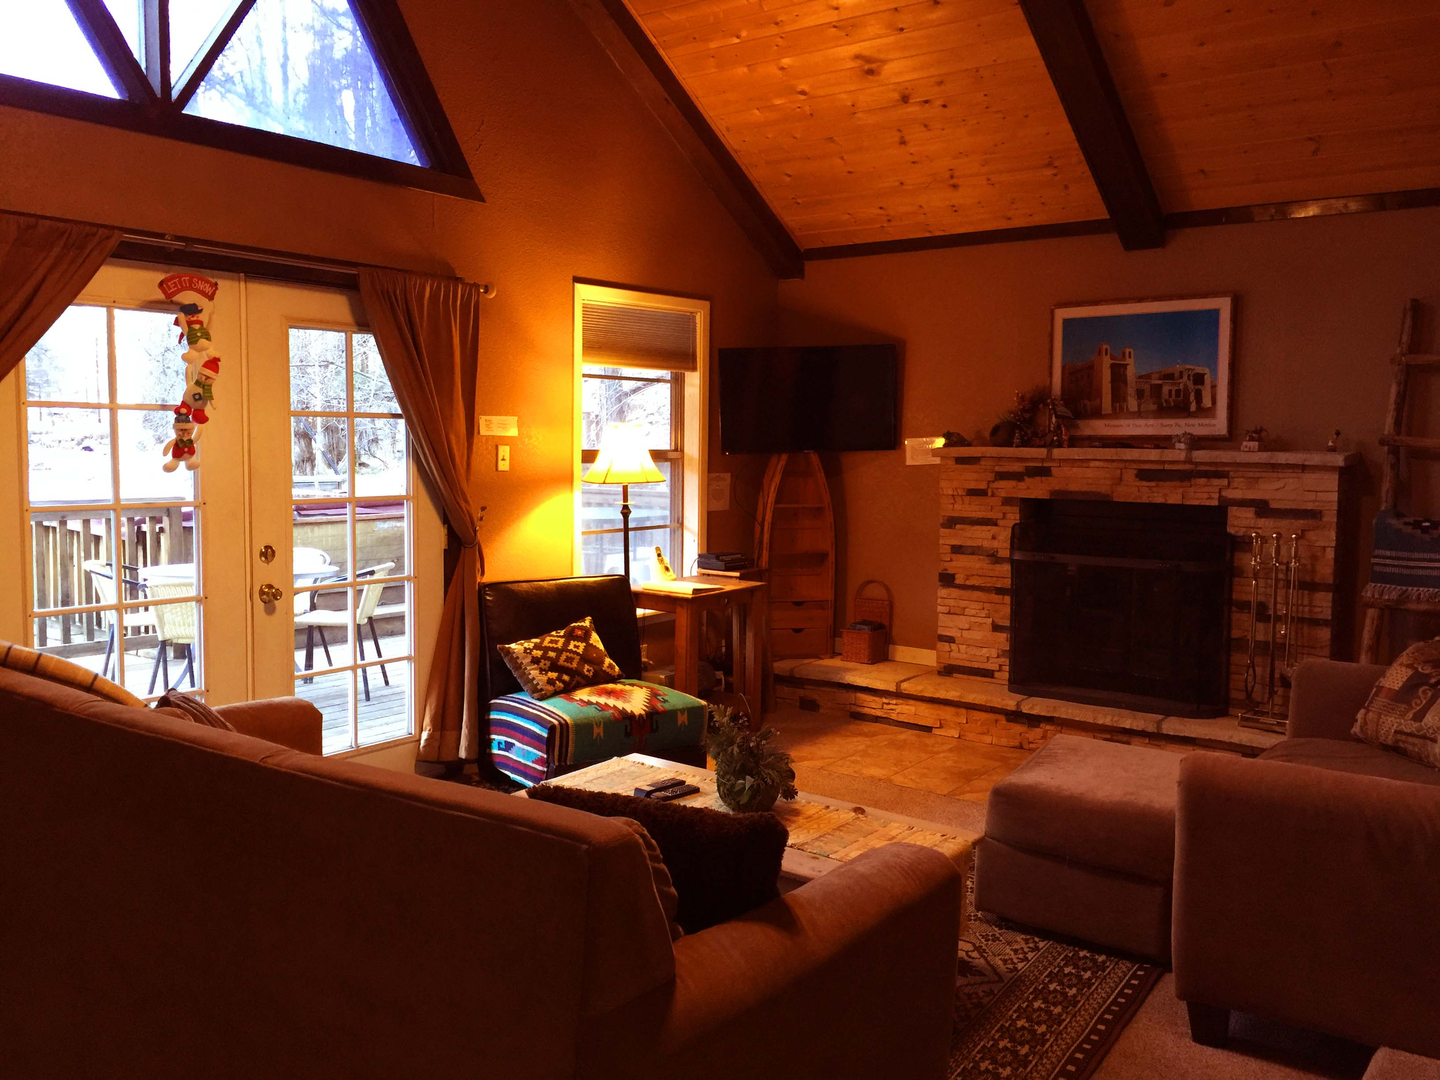 nm cabin accesskeyid cabins available rentals in ruidoso alloworigin disposition